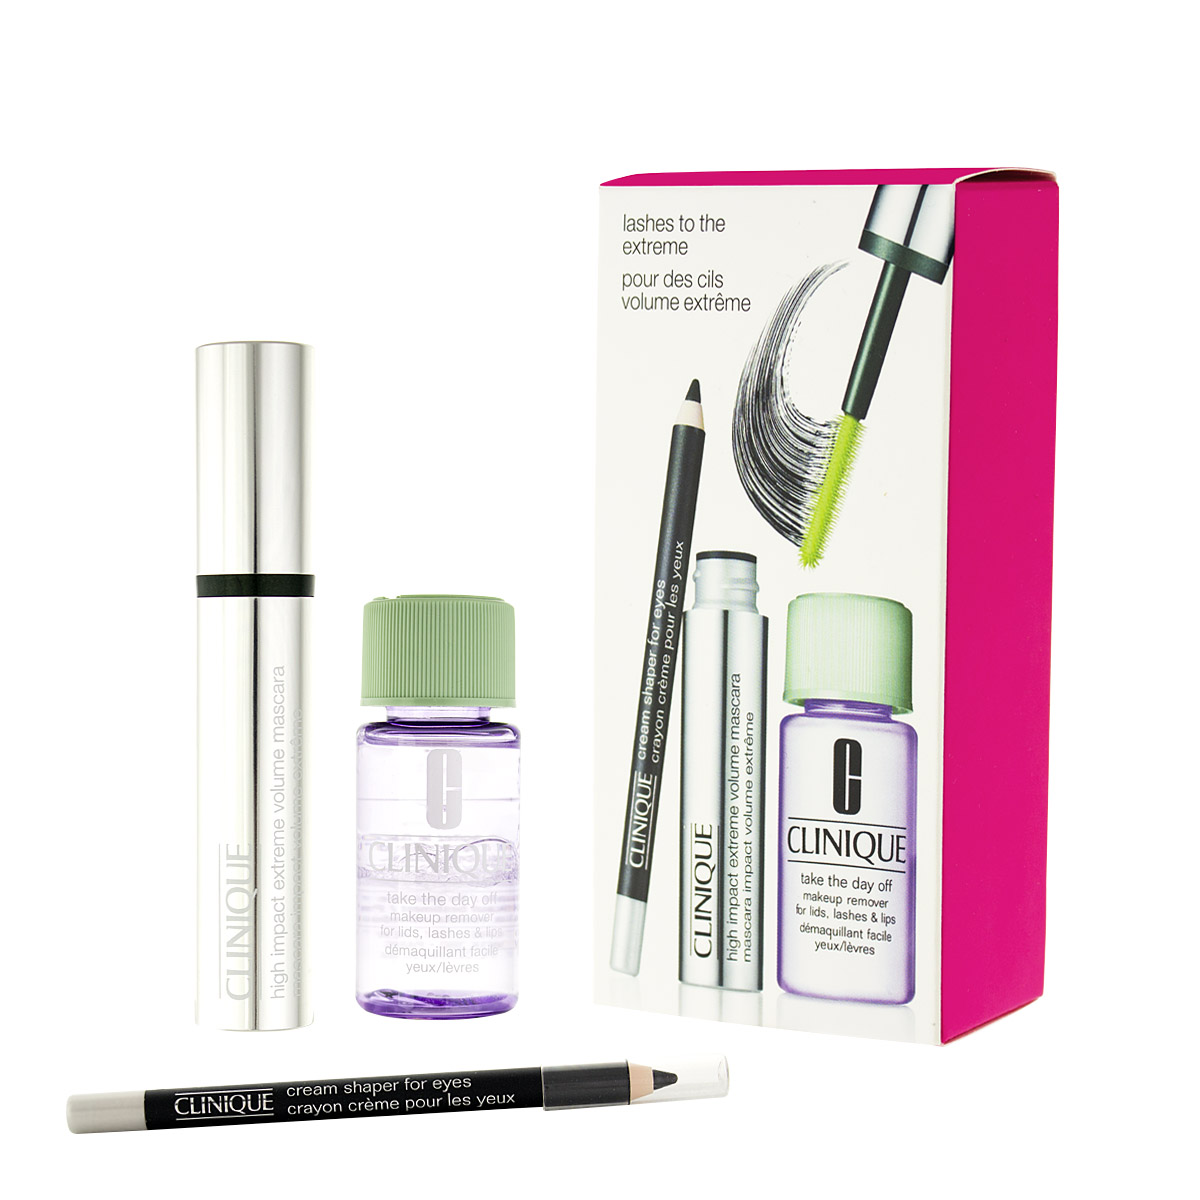 Clinique Make Up Sets for Eyes